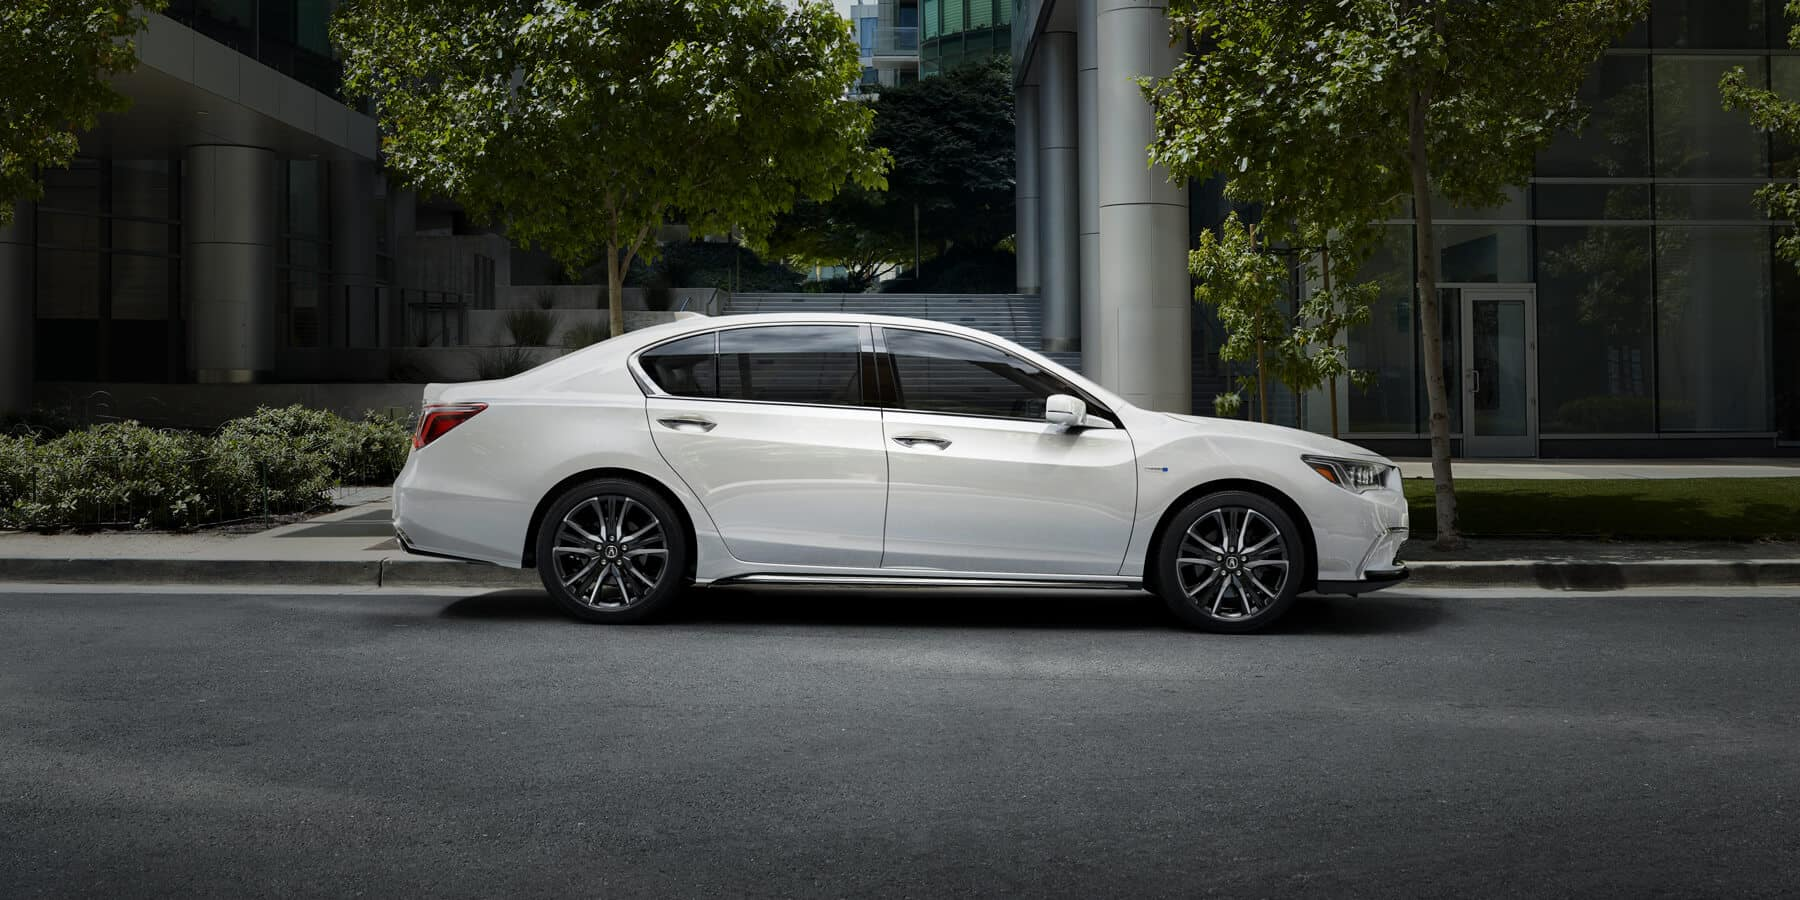 2020 Acura RLX Platinum White Pearl Side Profile HP Slide